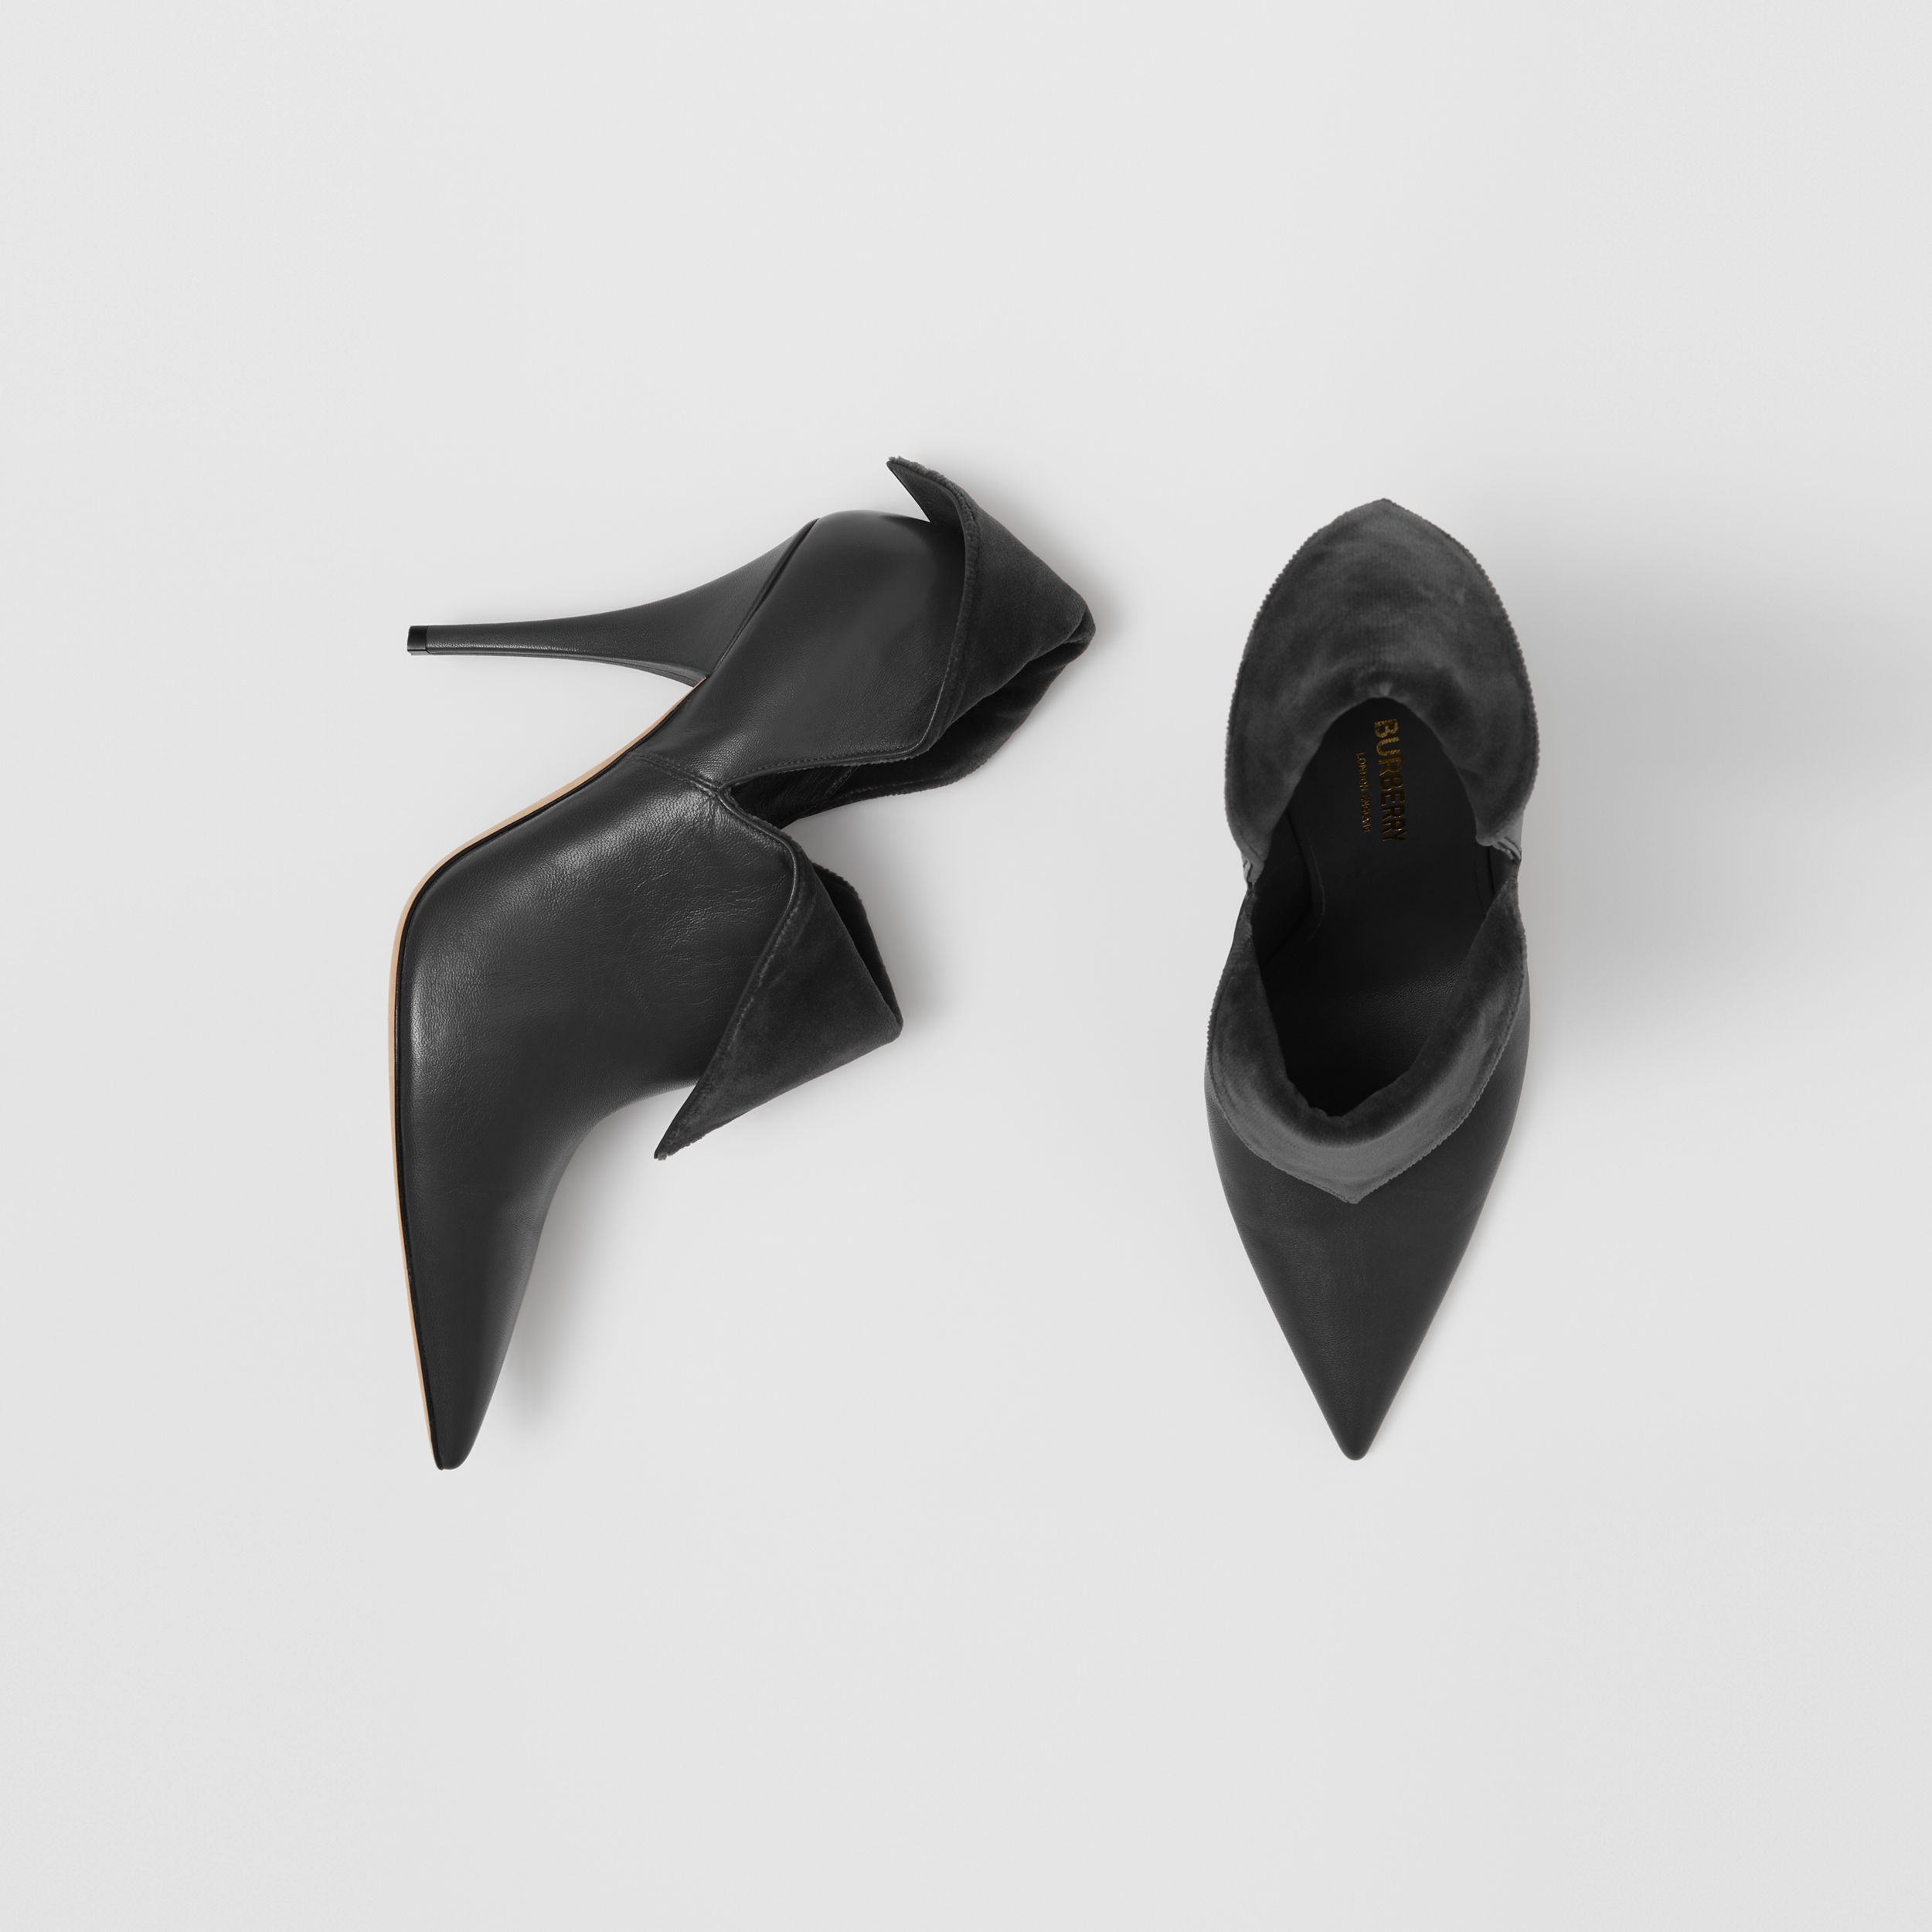 Velvet and Lambskin Foldover Point-toe Pumps in Black - Women | Burberry - 1